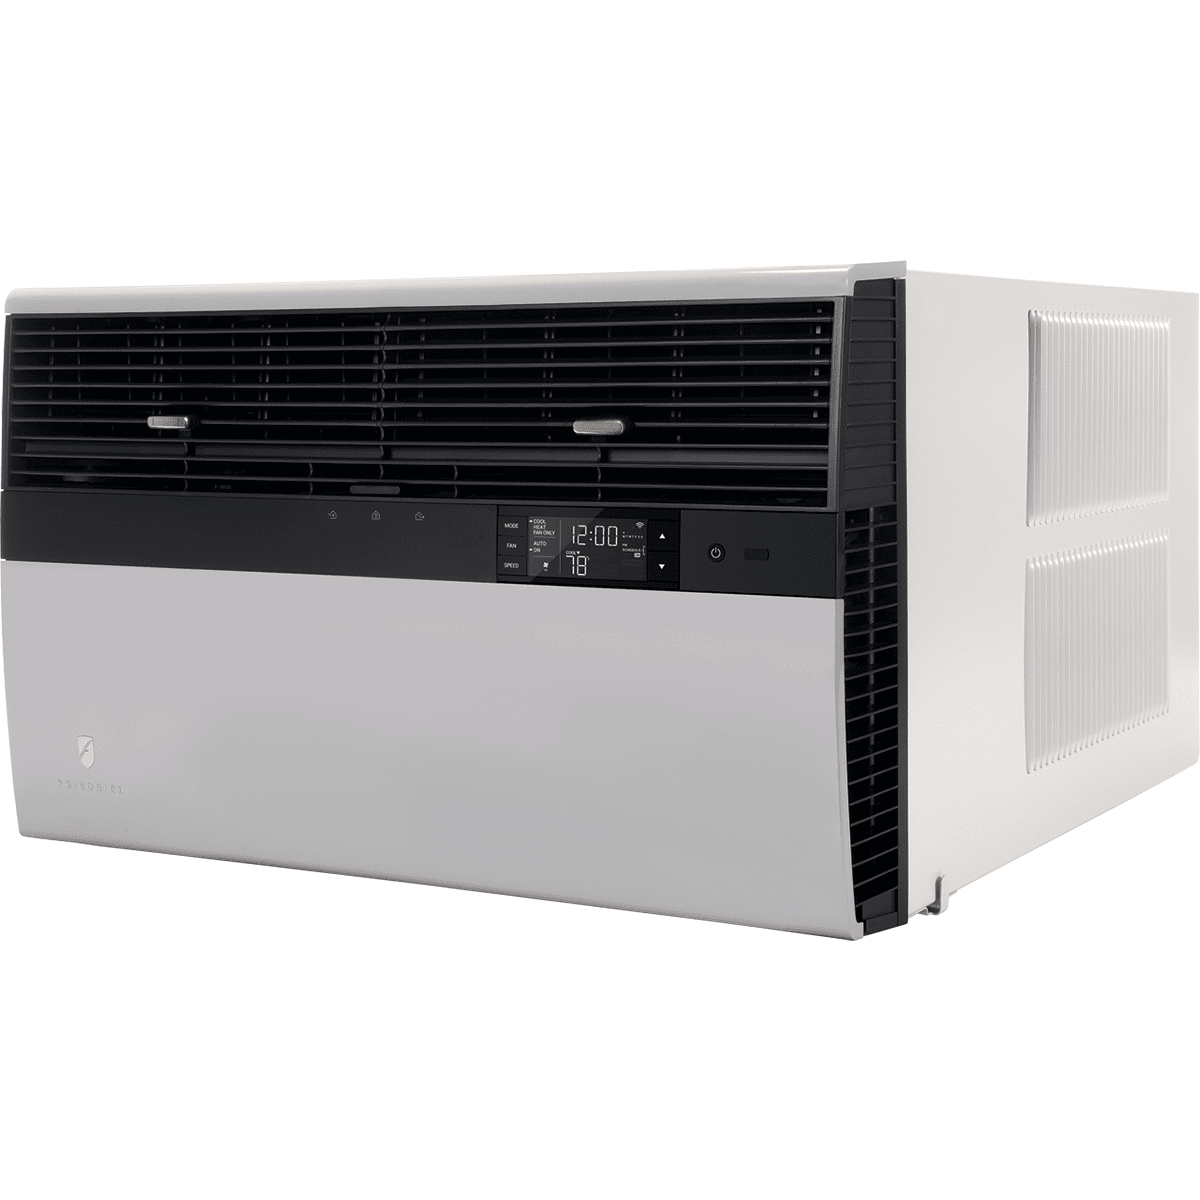 Friedrich Kuhl 12,000 BTU Window Air Conditioner with Electric Heat